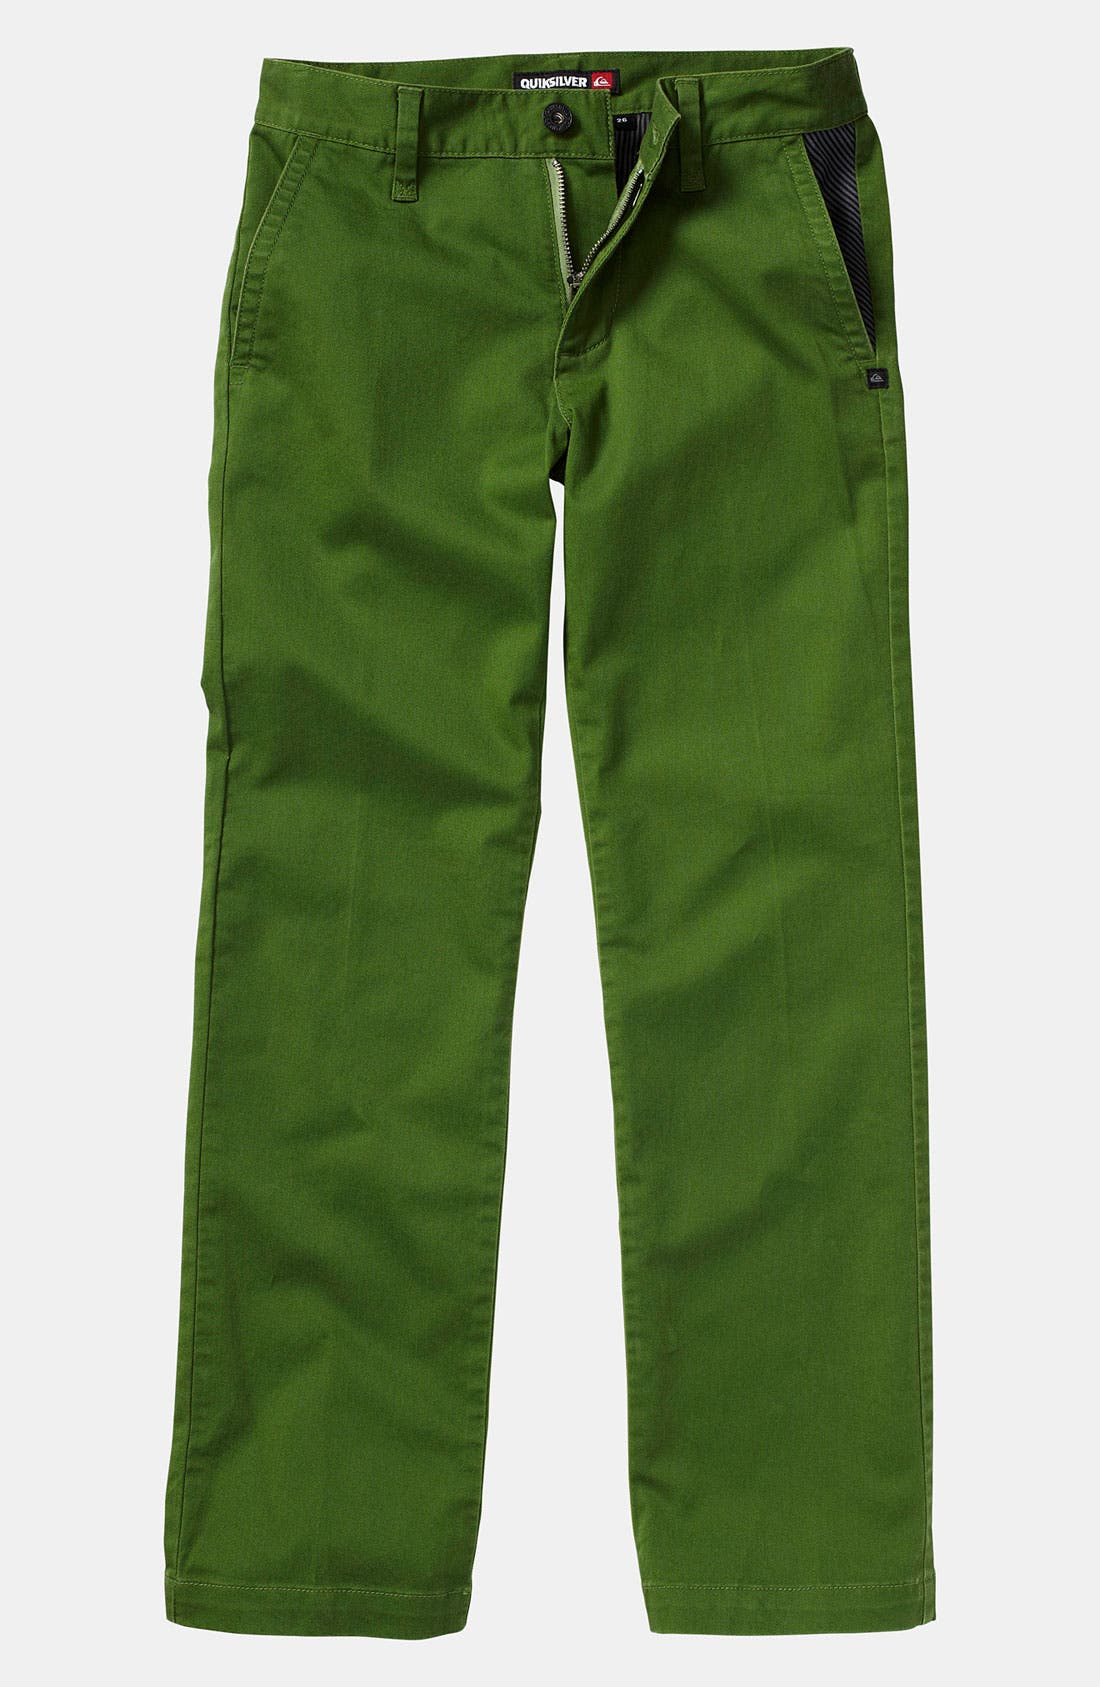 Alternate Image 1 Selected - Quiksilver 'Box Wire' Slim Straight Leg Chino Pants (Little Boys)